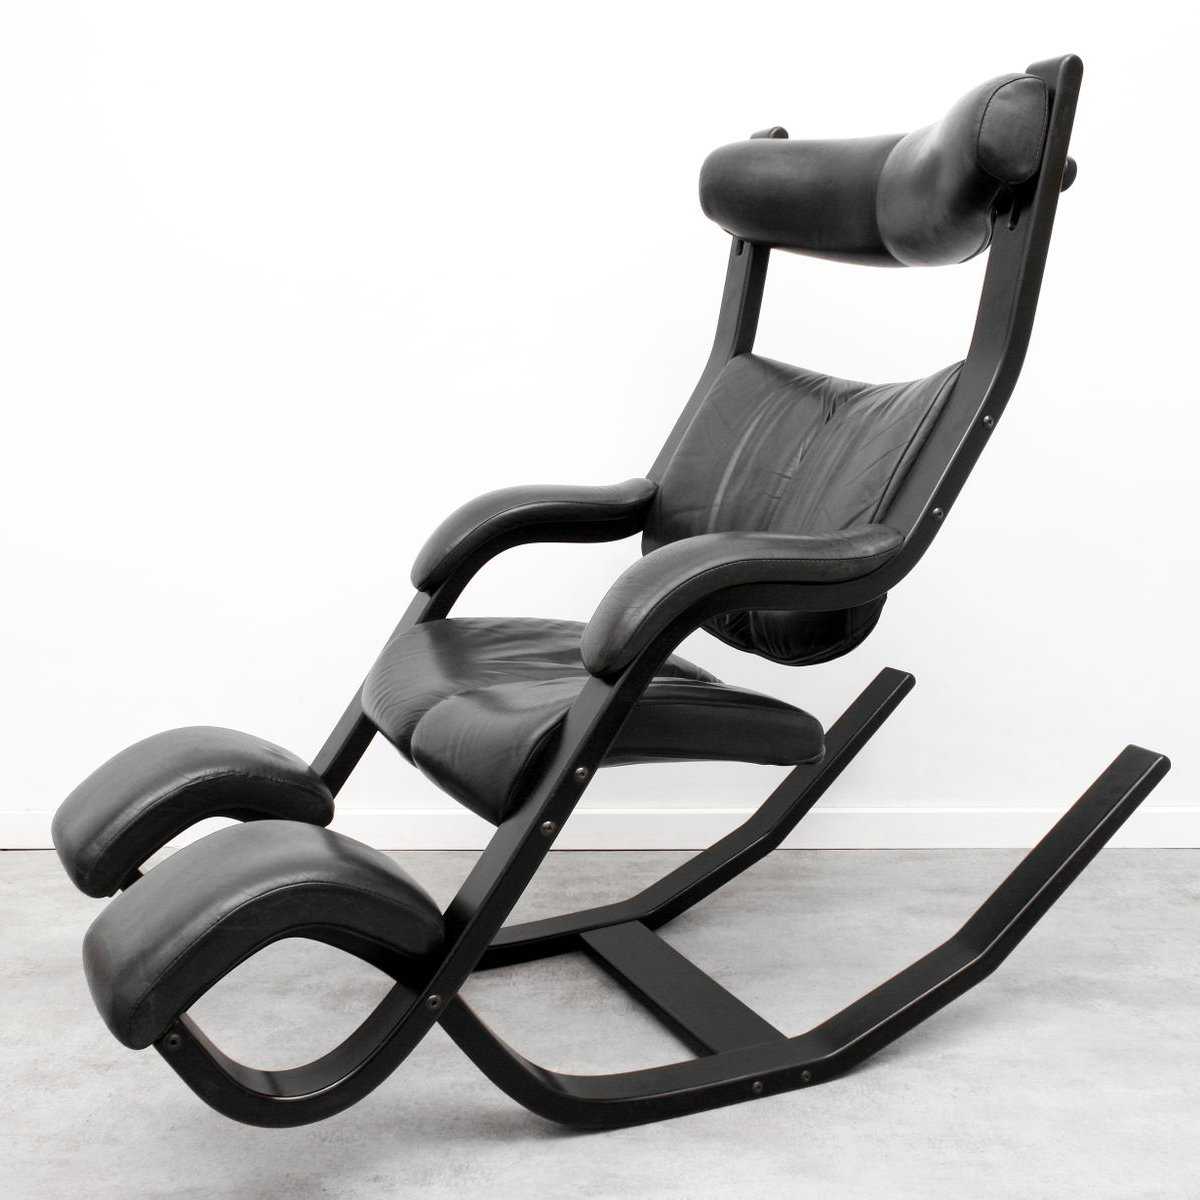 stokke gravity balans chair recaro computer leather relax armchair by peter opsvik for